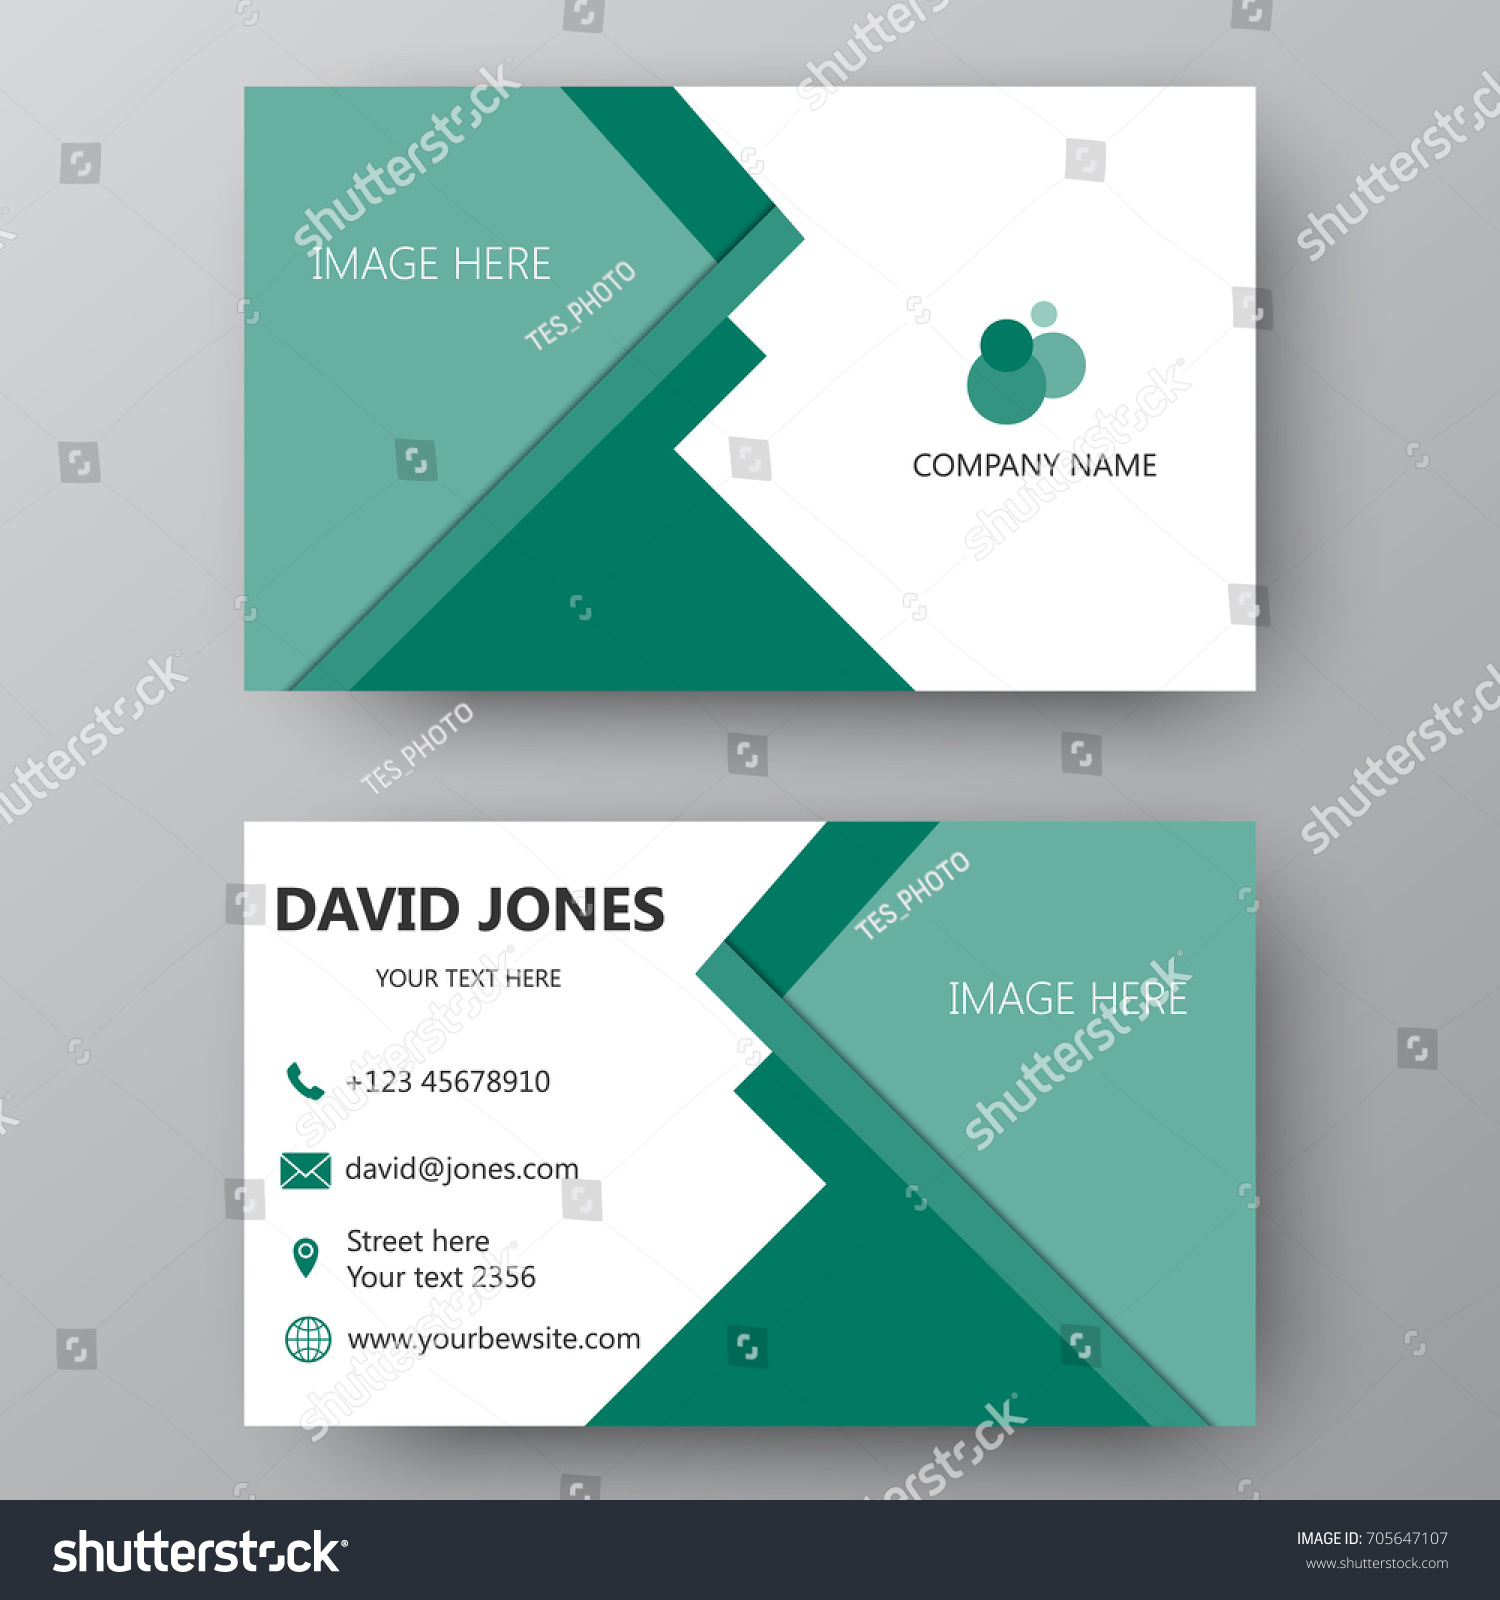 Vector Business Card Template Visiting Card Stock Vector HD (Royalty ...